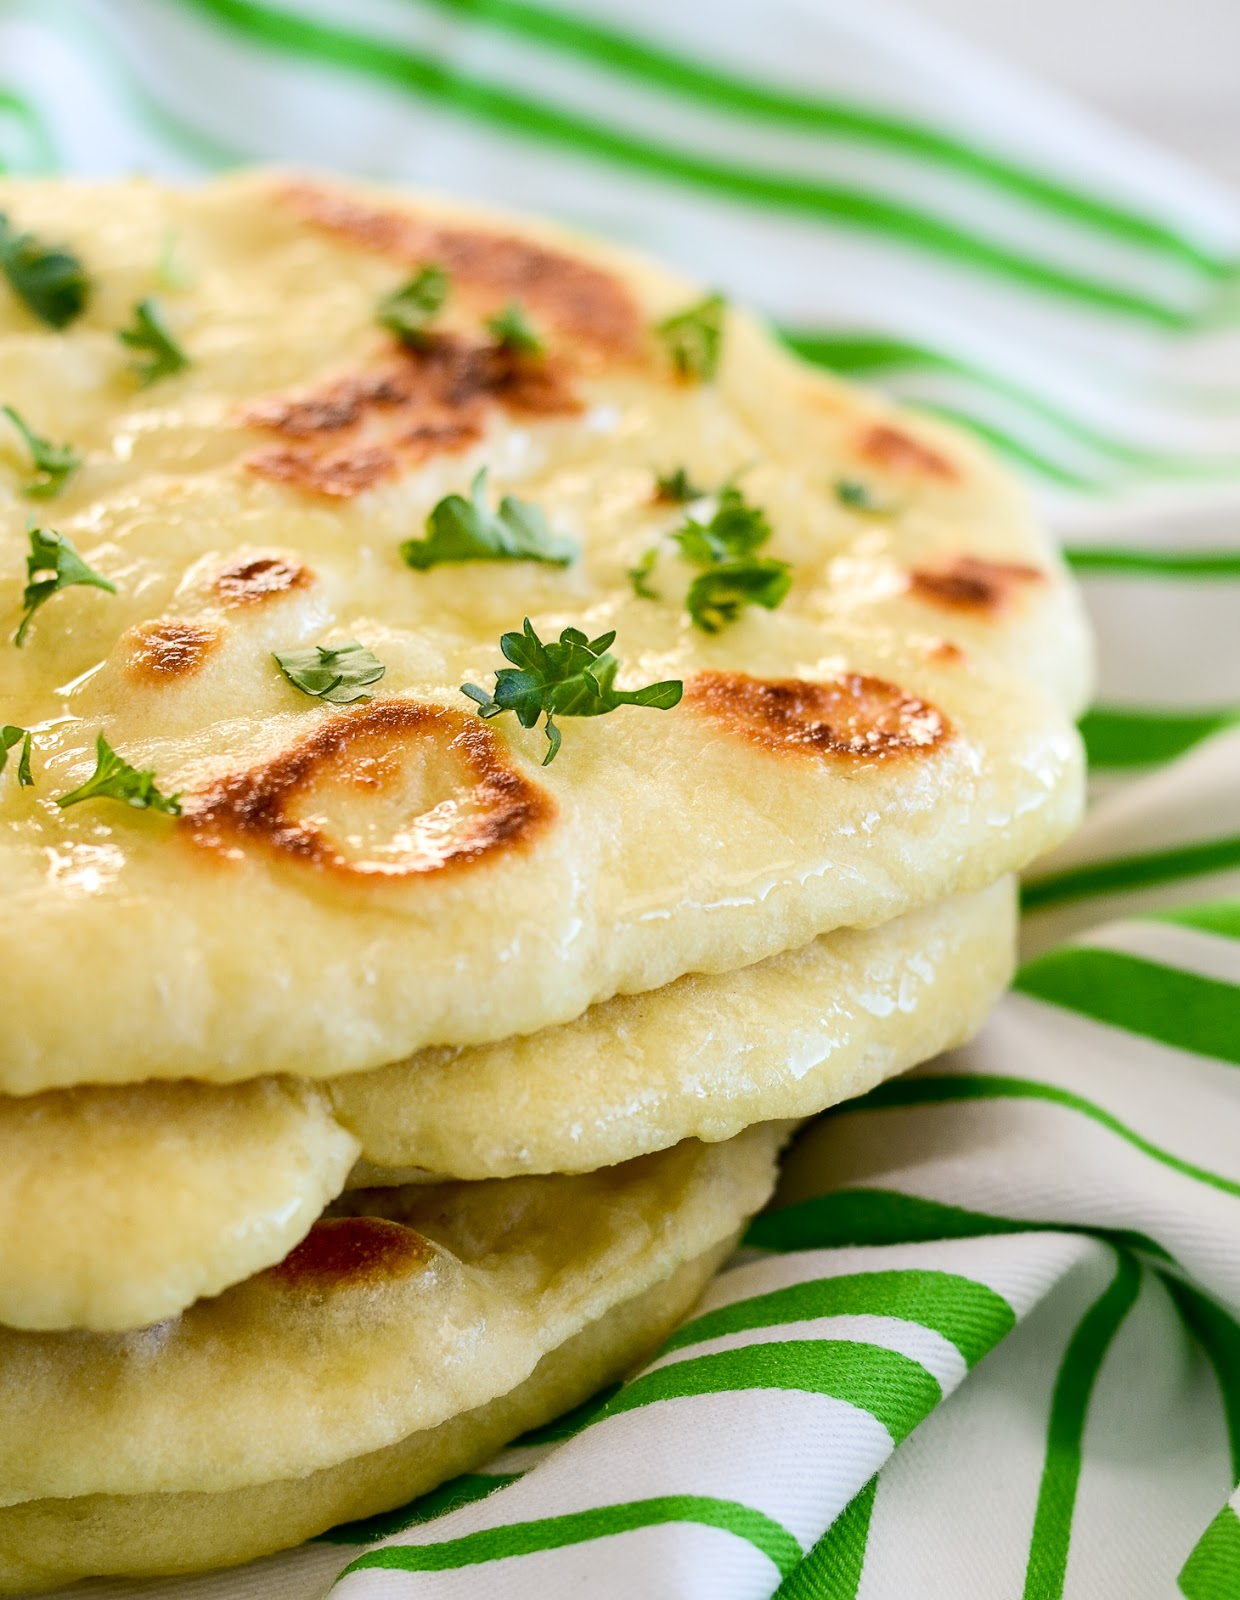 HOMEMADE NAAN BREAD #homemade #healthy  #paleo #diet #keto